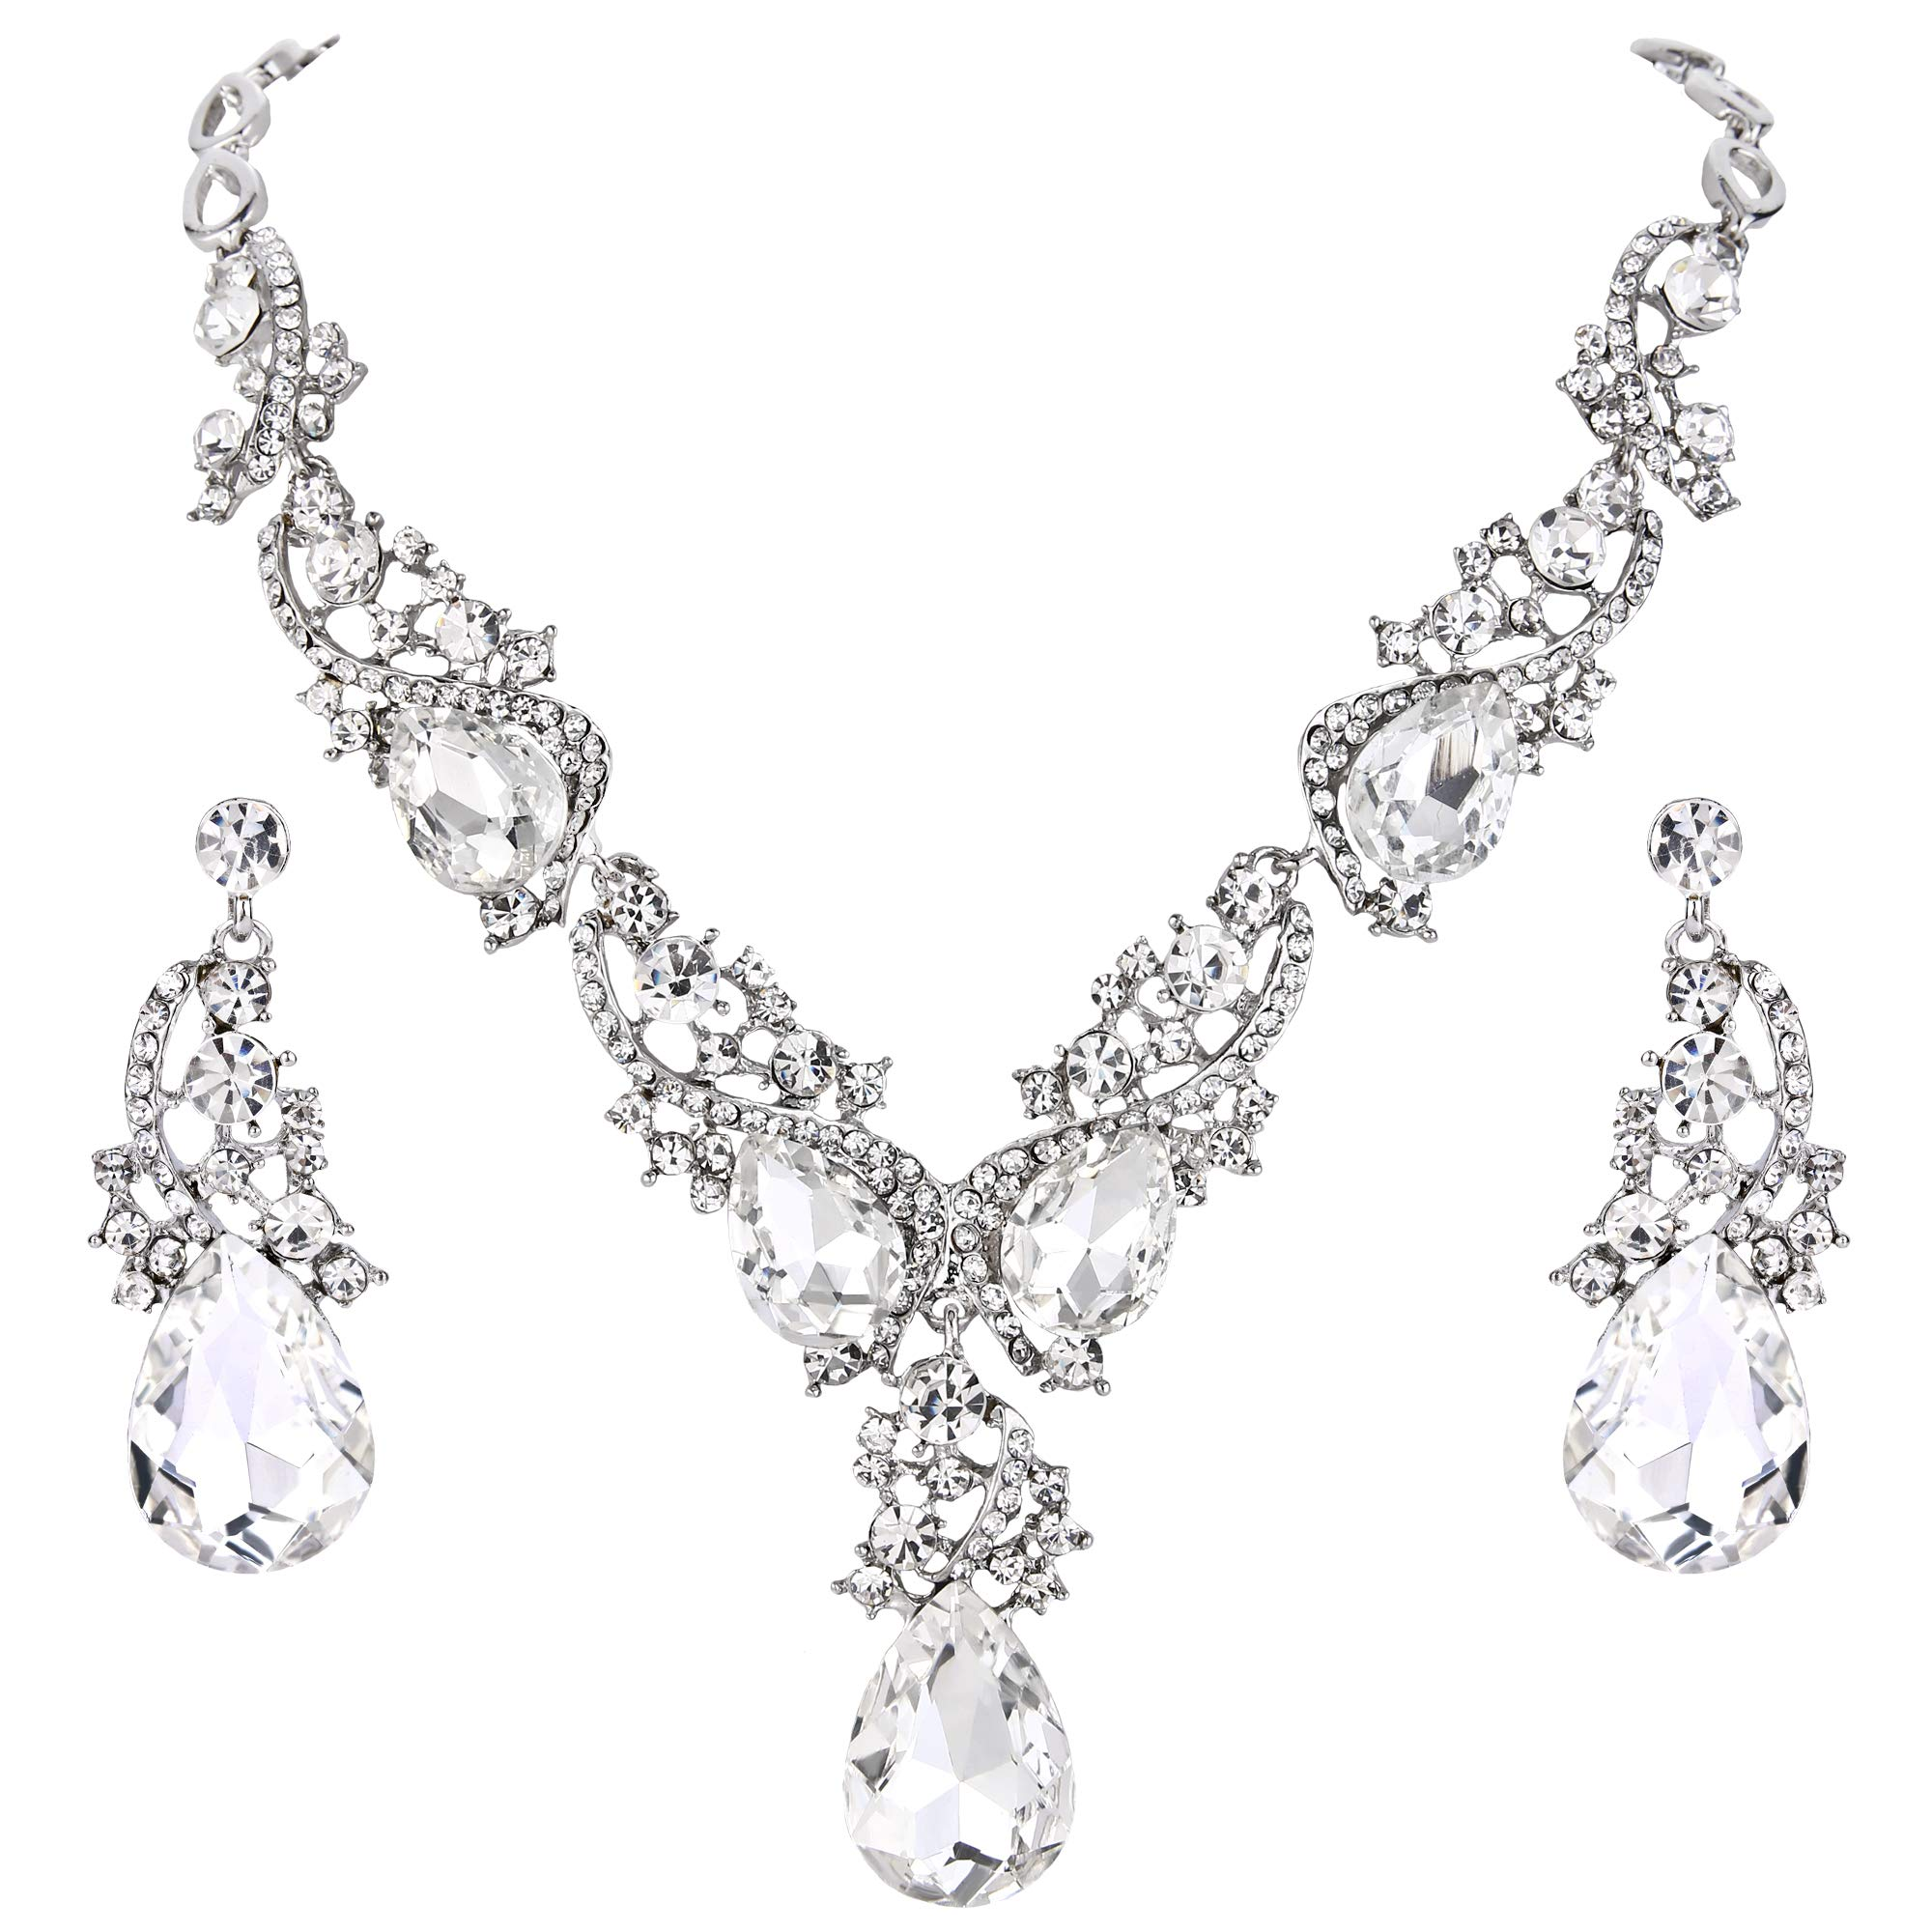 BriLove Women's Wedding Bridal Statement Necklace Dangle Earrings Jewelry Set with Multi Teardrop Cluster Crystal Clear Silver-Tone